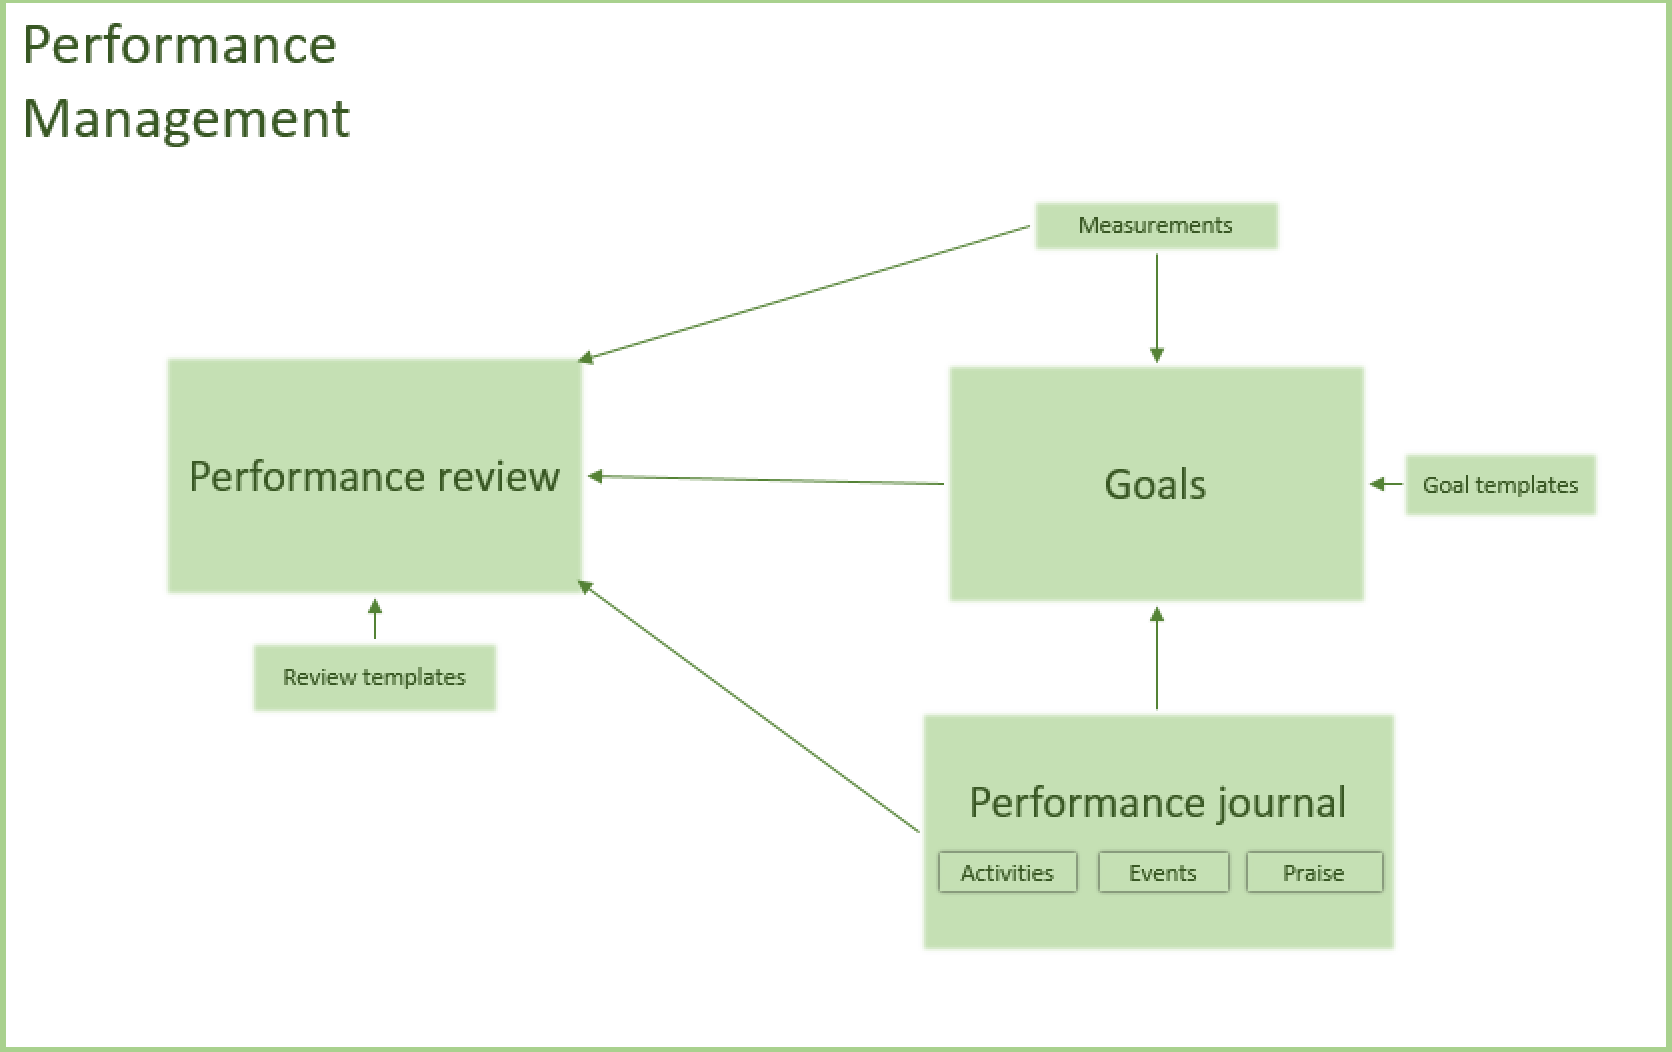 Performance management finance operations dynamics 365 performance process overview ccuart Gallery